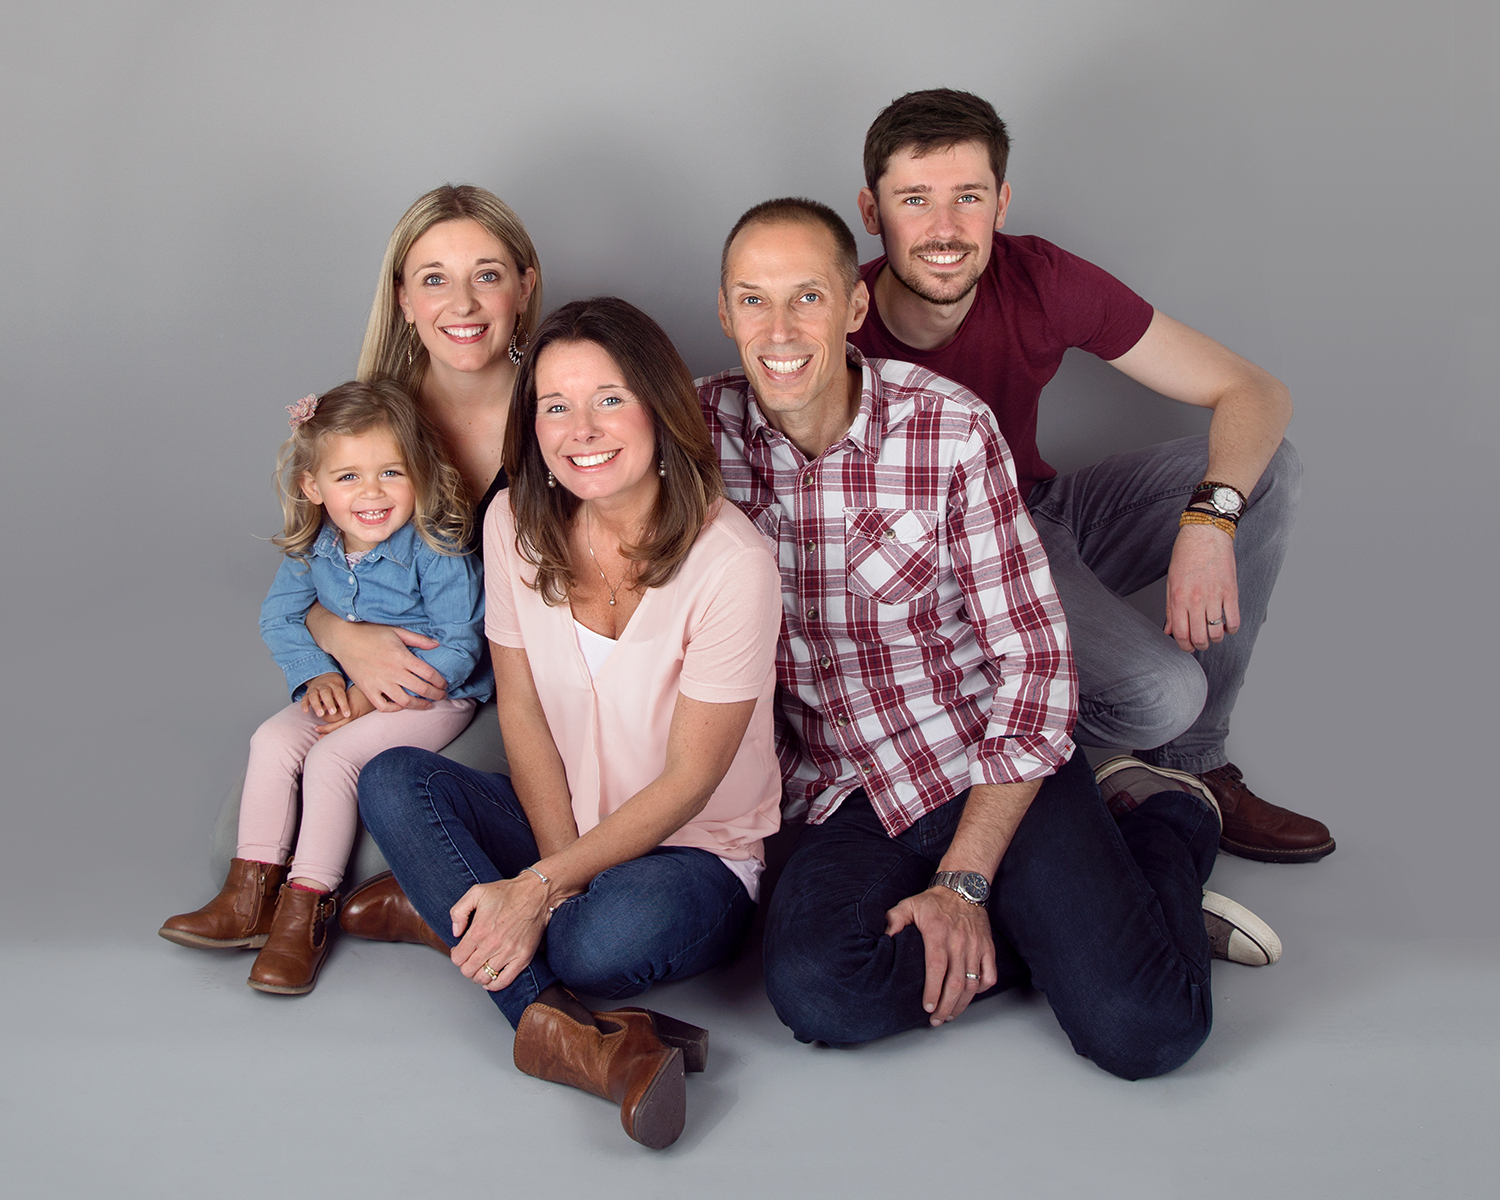 Family photography in Gloucestershire